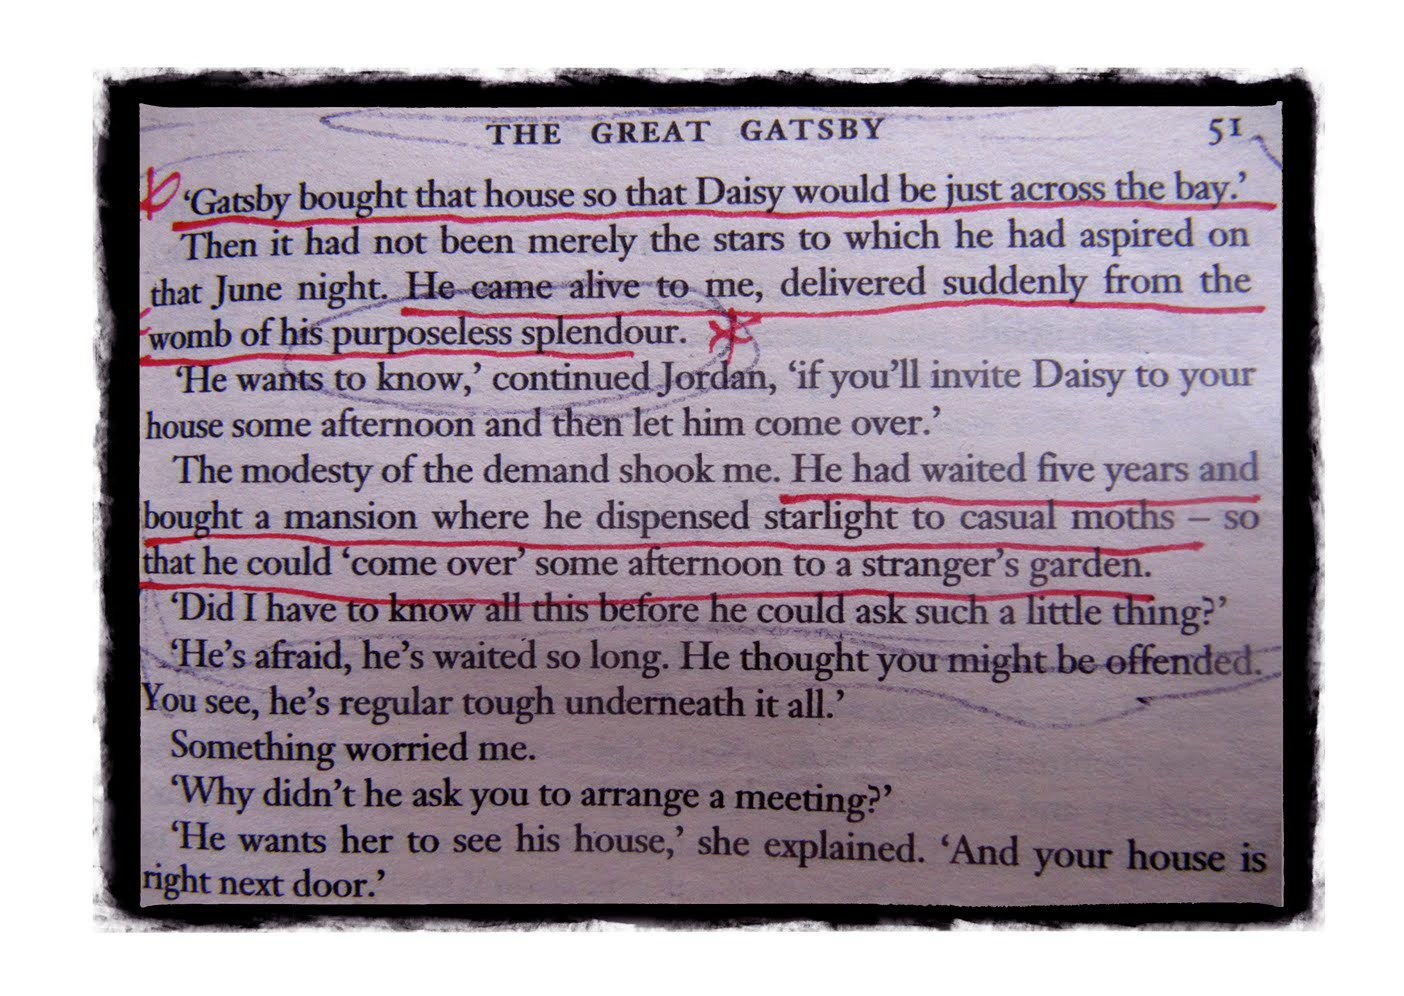 aspects of narrative great gatsby essay Aspects of tragedy in the great gatsby francis scott fitzgerald's the great gatsby is a novel brimming with various tragic elements: love, ambition, hope and the loss of hope, and, of course, death but is this american classic a true tragedy does gatsby indeed possess a tragic flaw- which leads .